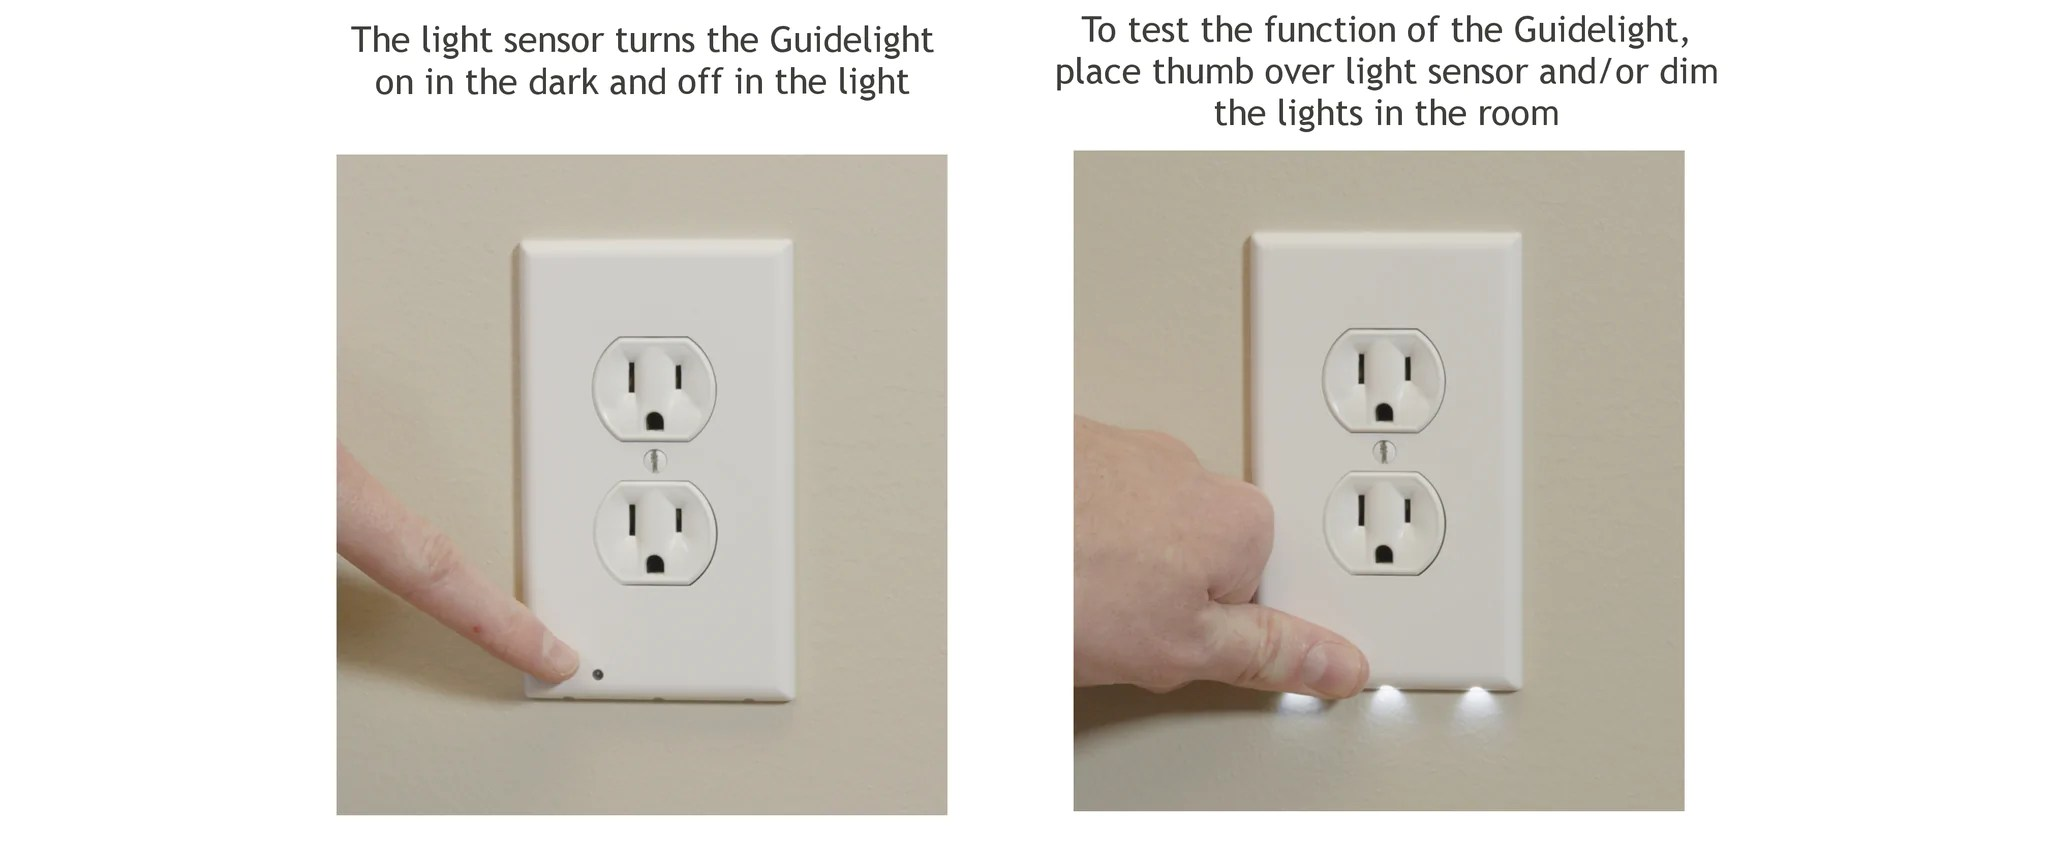 hight resolution of if your guidelight is still not working try adjusting the screw that attaches the guidelight to the outlet either tightening or loosening this screw can